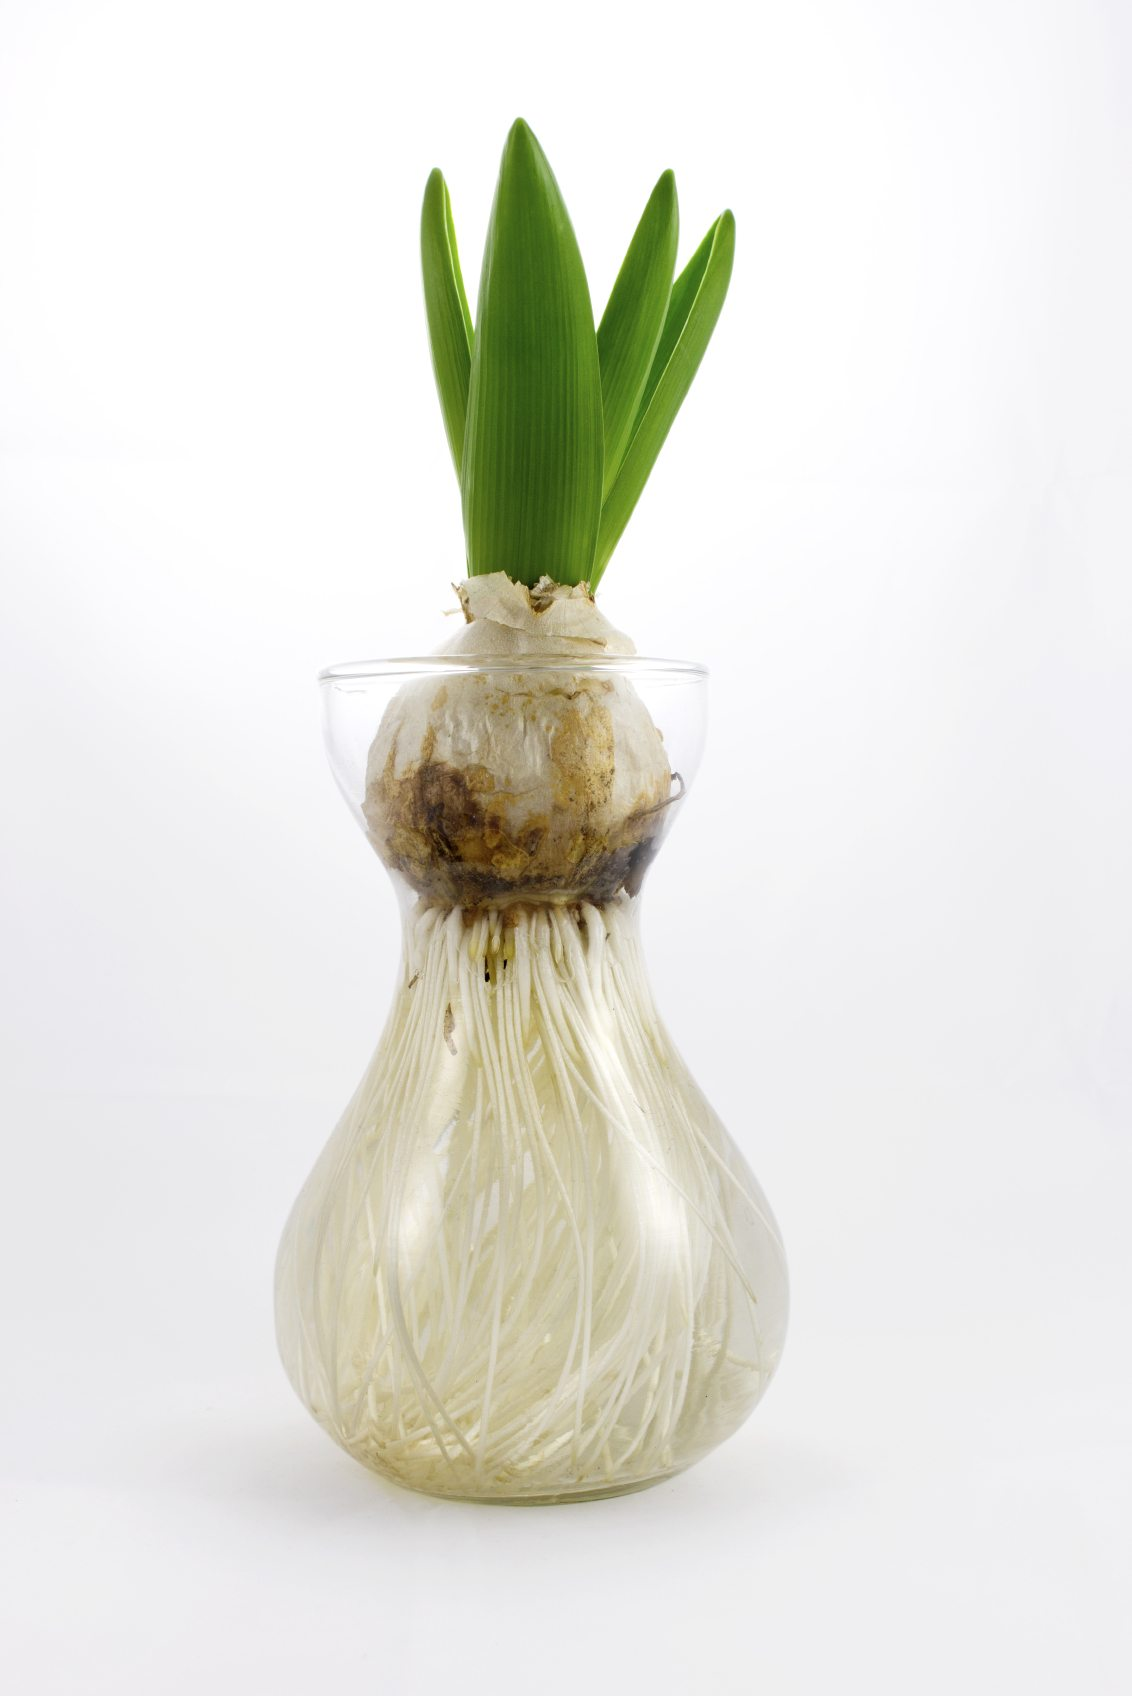 Can Tulips Grow In Water Tips On Growing Tulips Without Soil